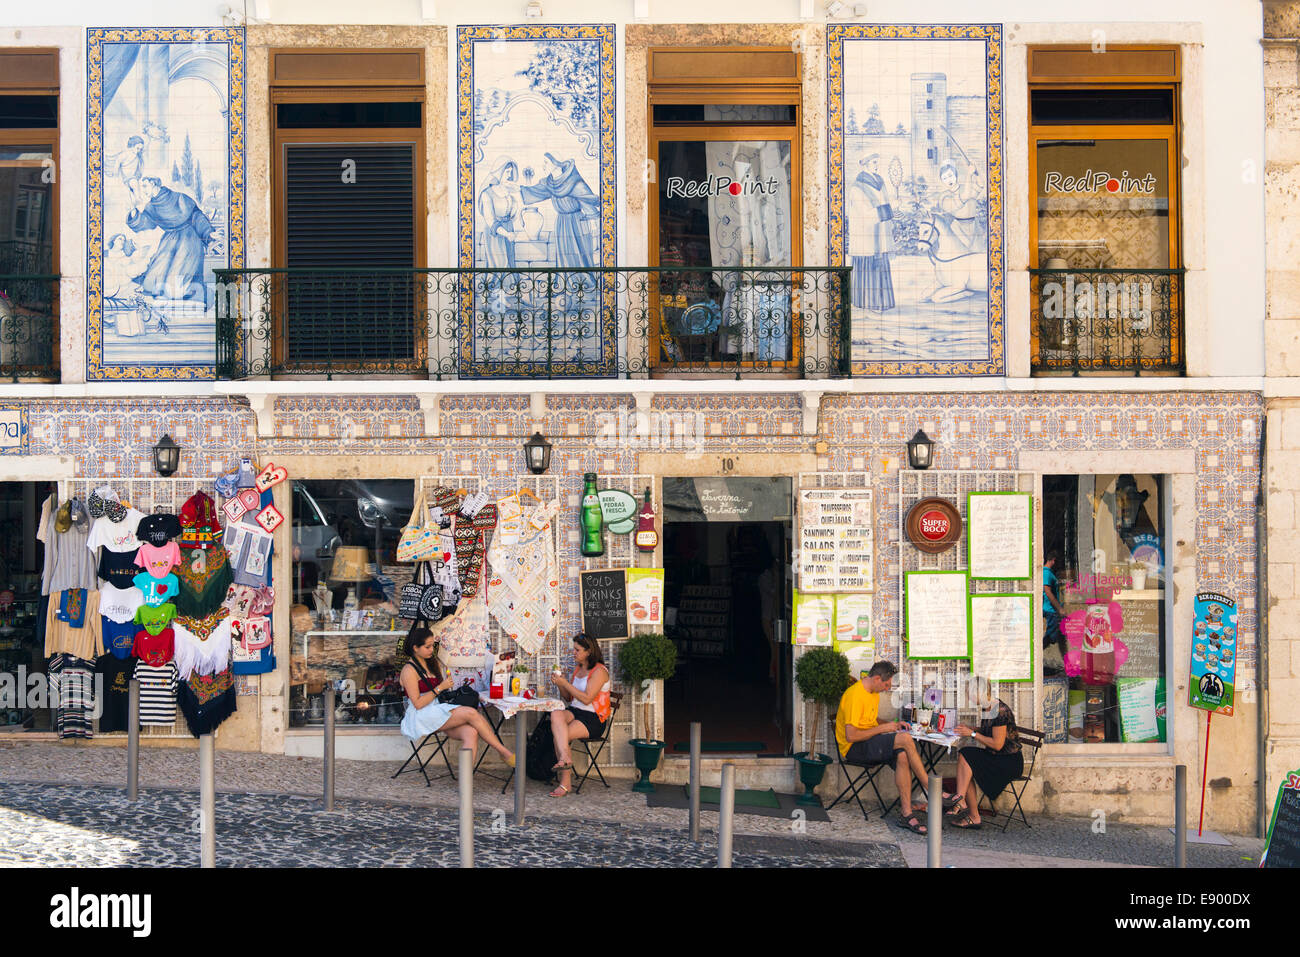 Portugal Lisbon Alfama Taverna do St Antonio hillside pub pavement sidewalk cafe snack bar bistro souvenir shop Stock Photo